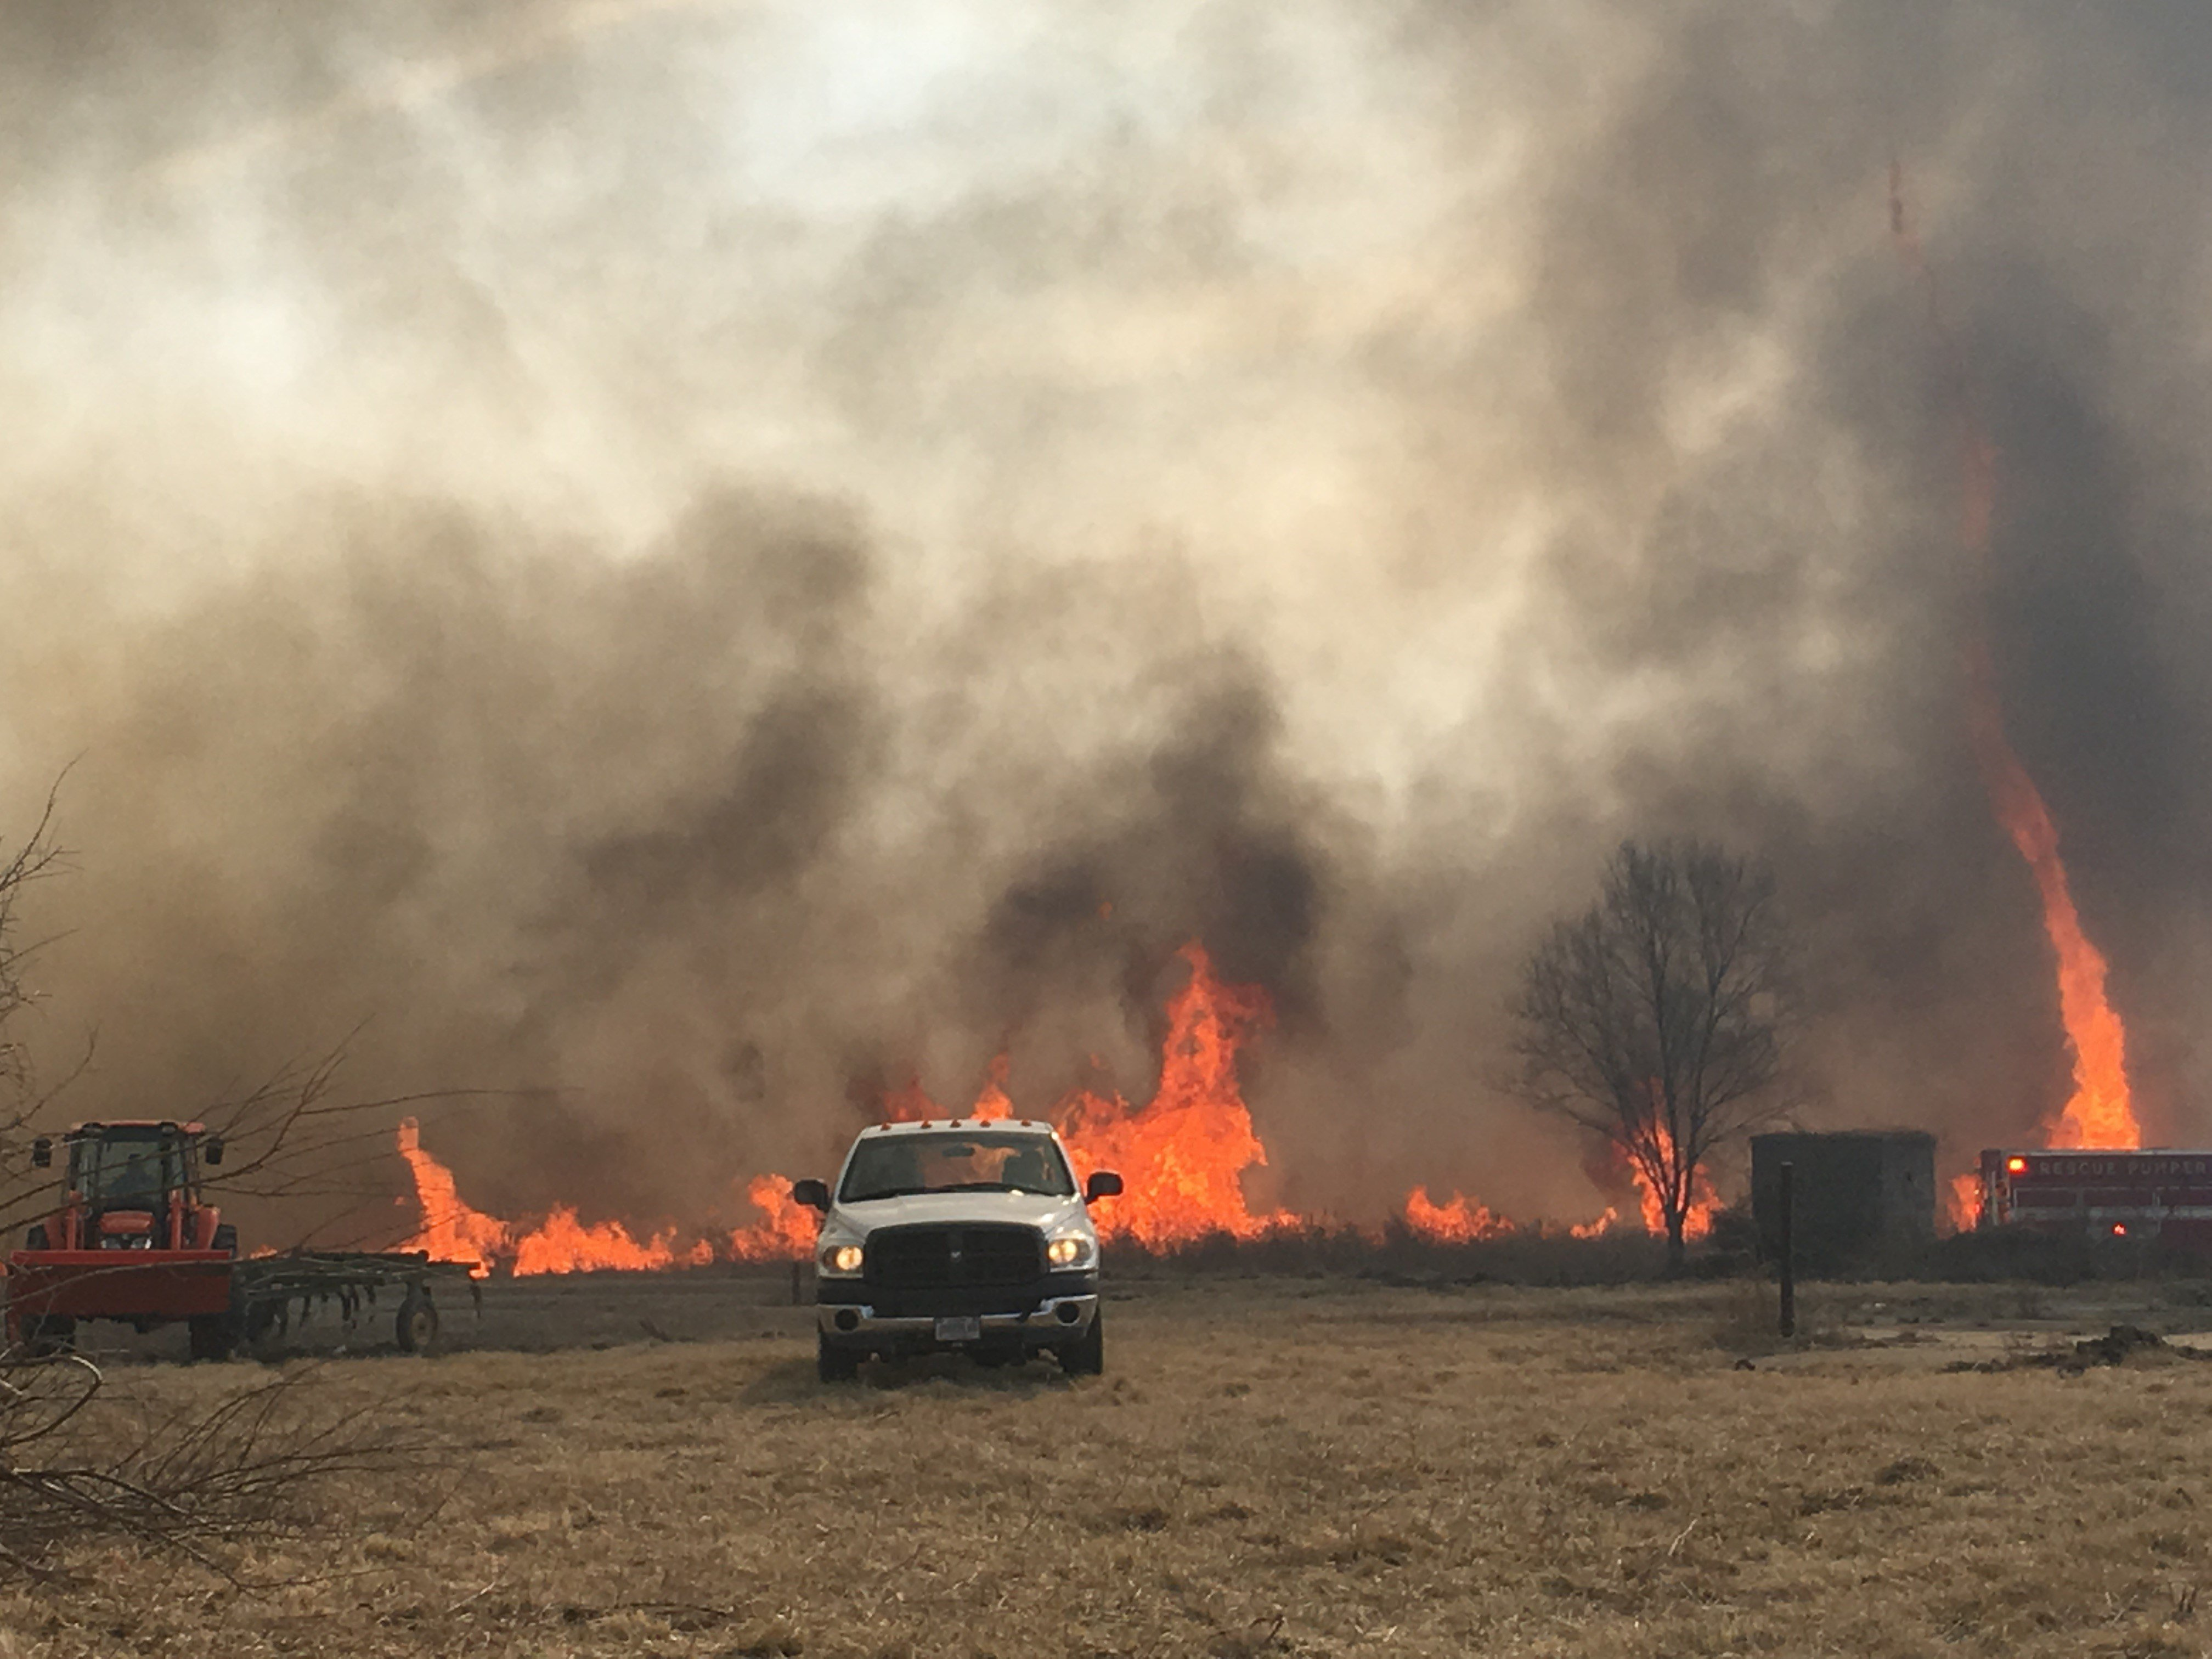 strong winds dry conditions fuel massive grass fires in platte the land is owned by the federal bureau of prisons officials said the fire started